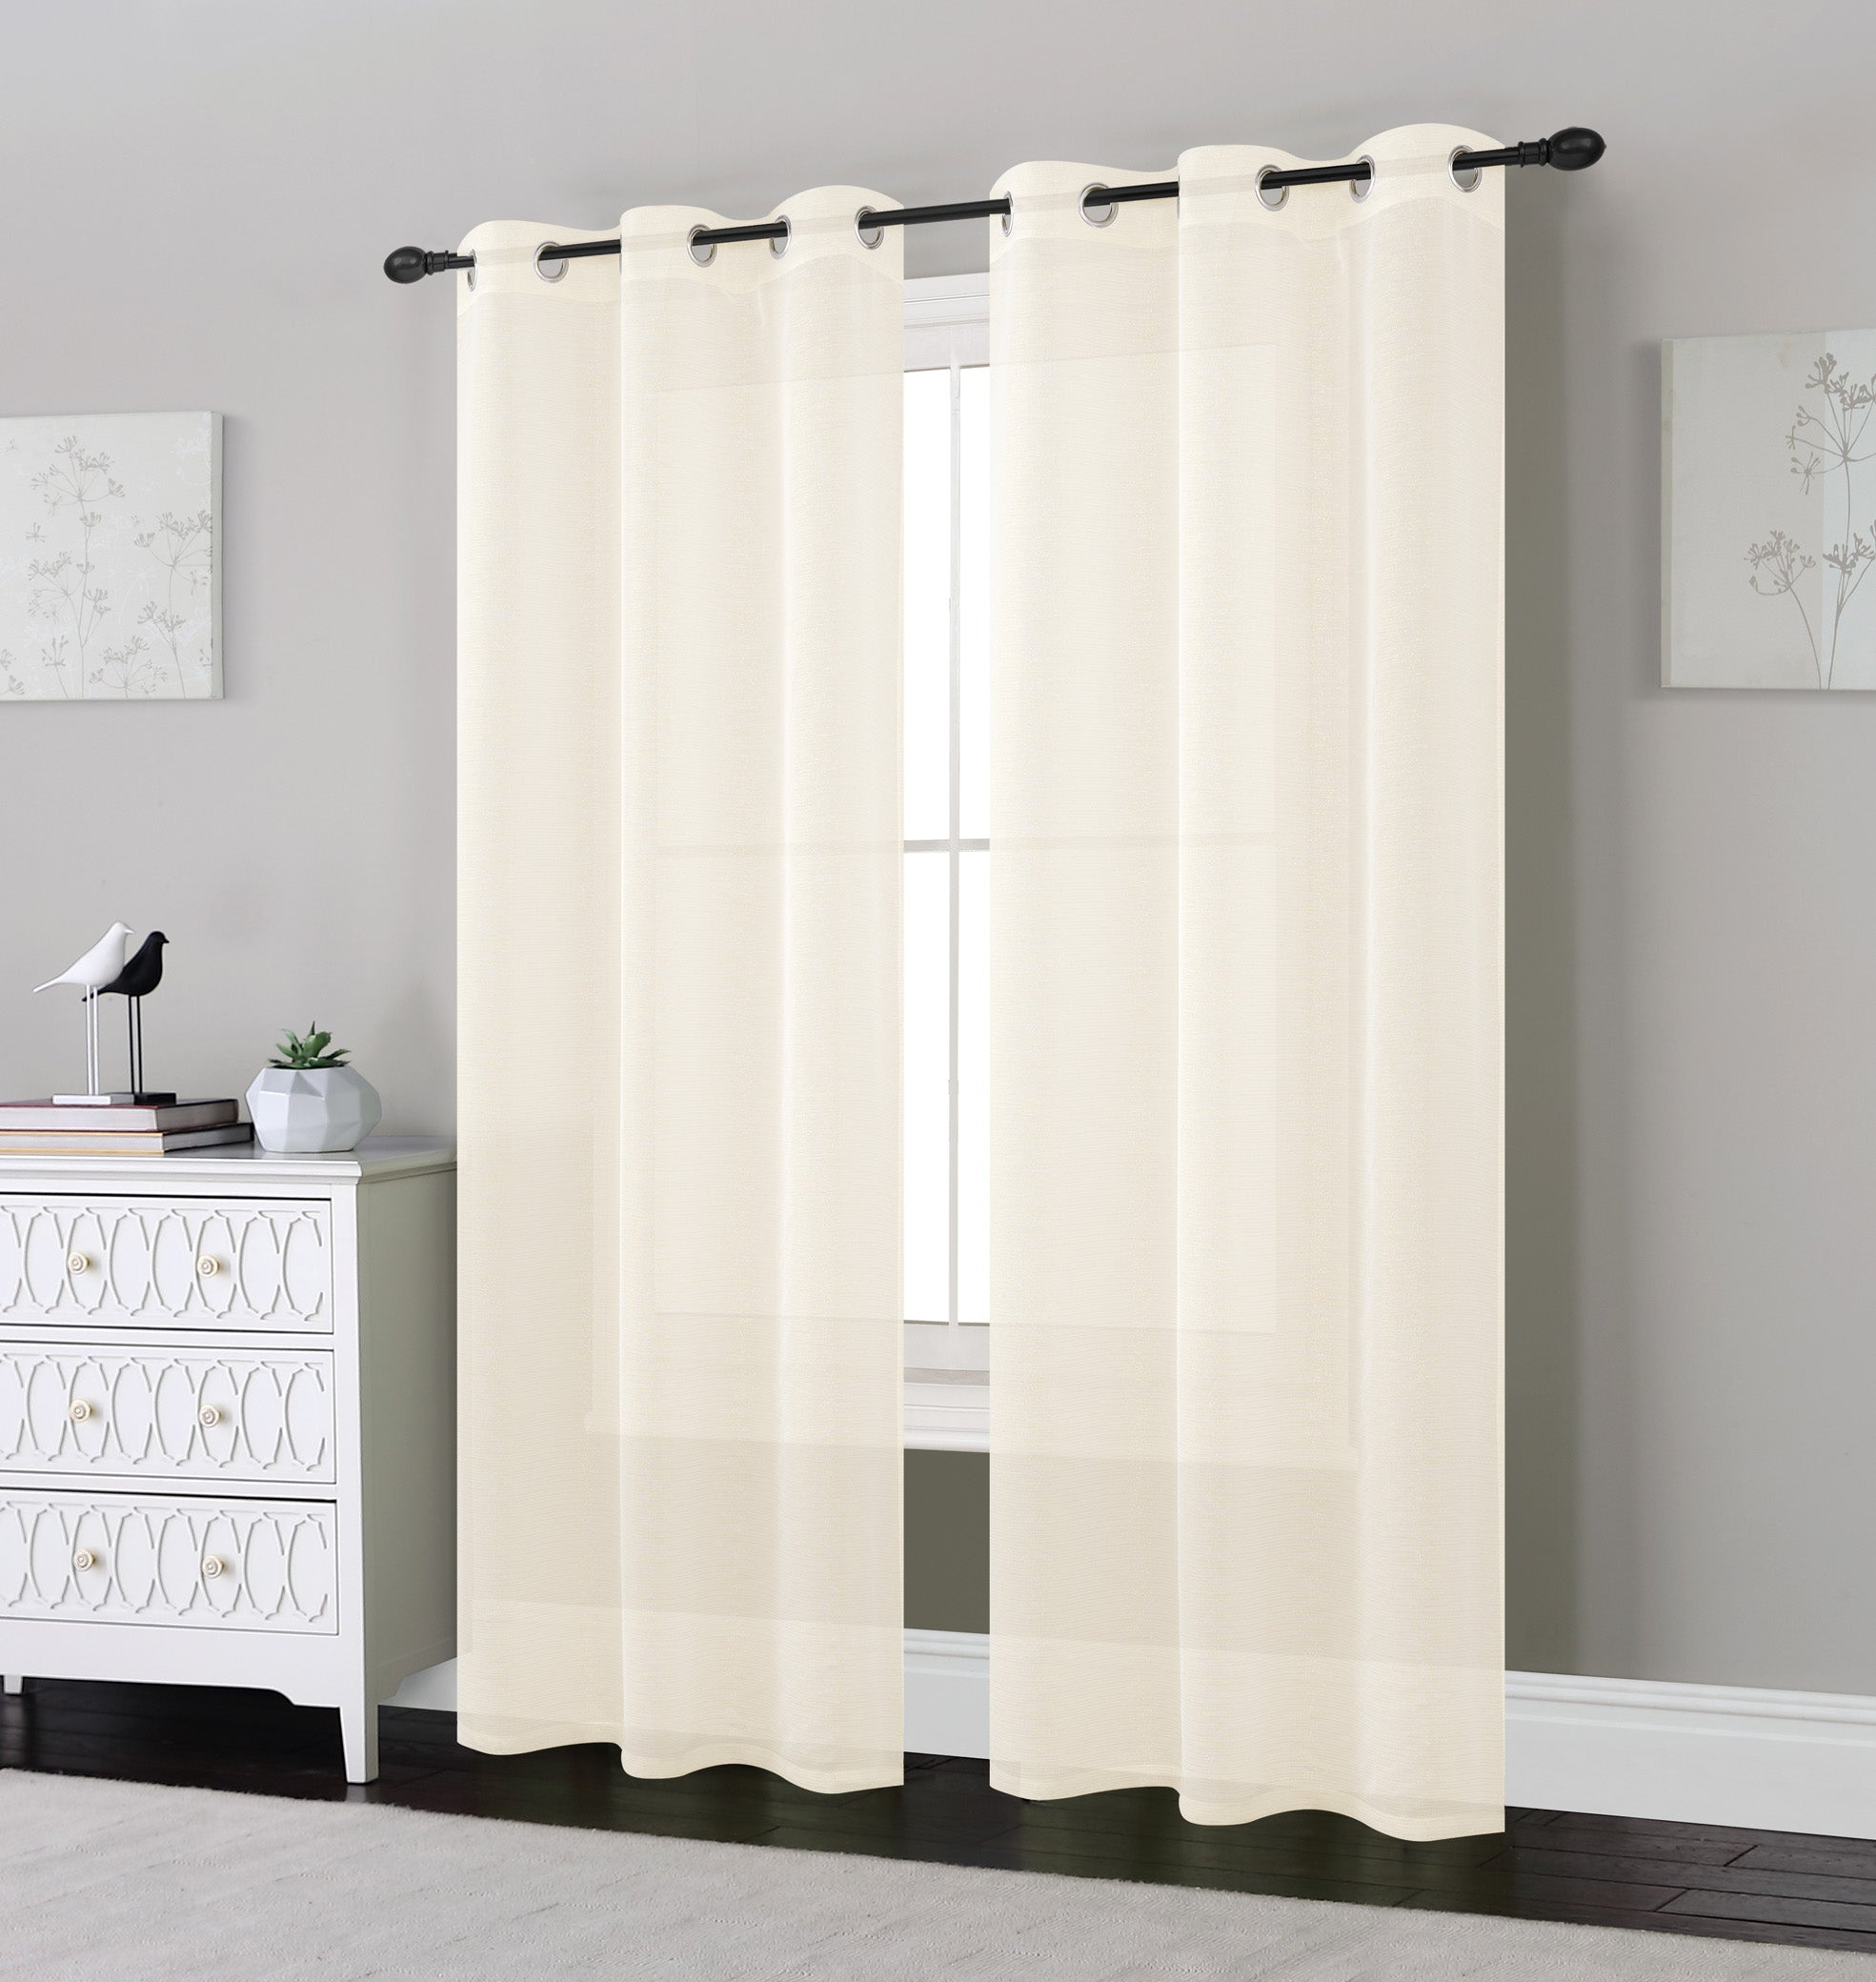 Madeline 2 Pack Window Panels with Lurex Stripes